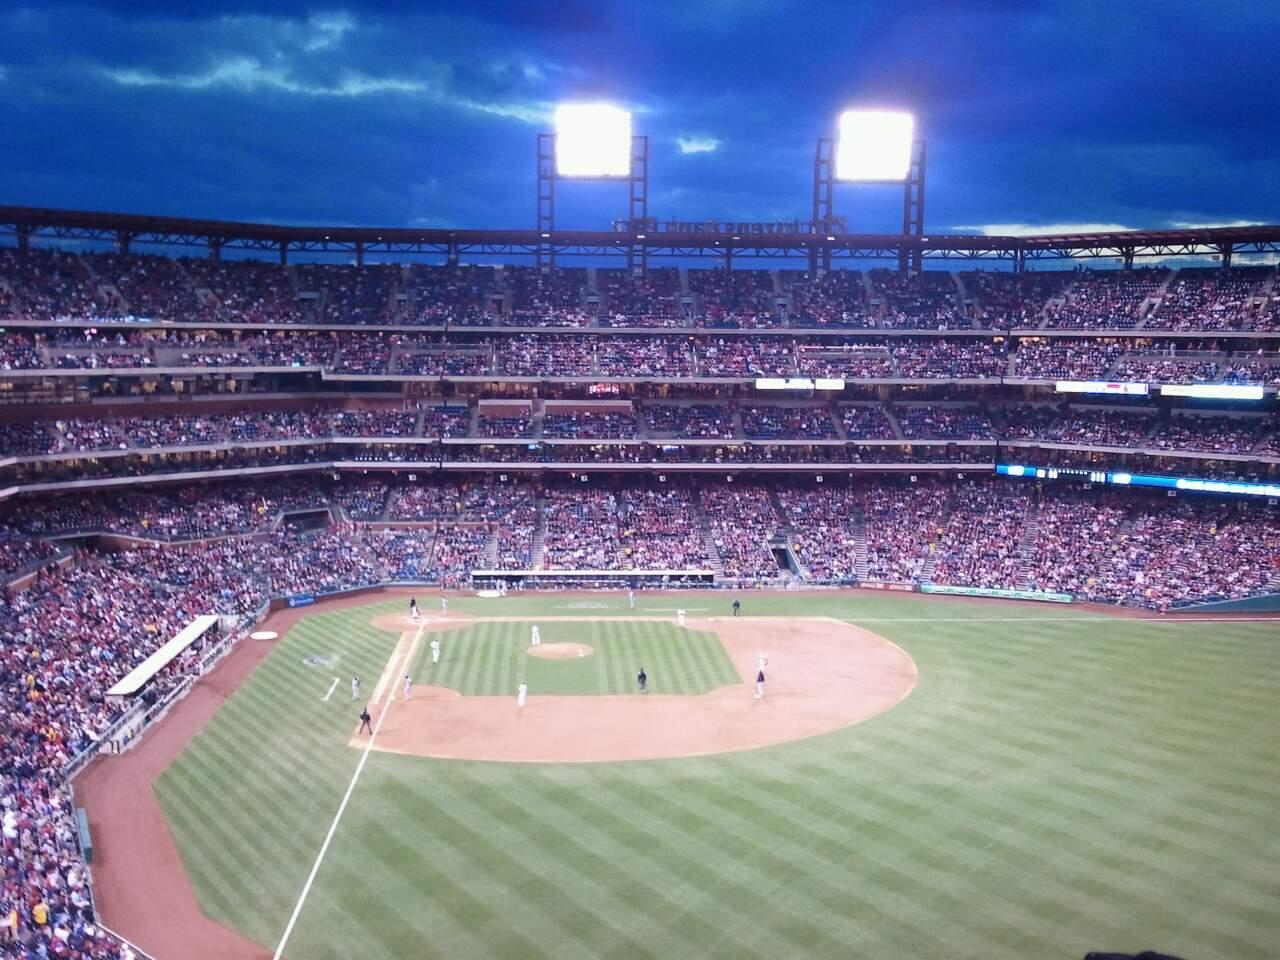 Citizens Bank Park Section 304 Row 11 Seat 12